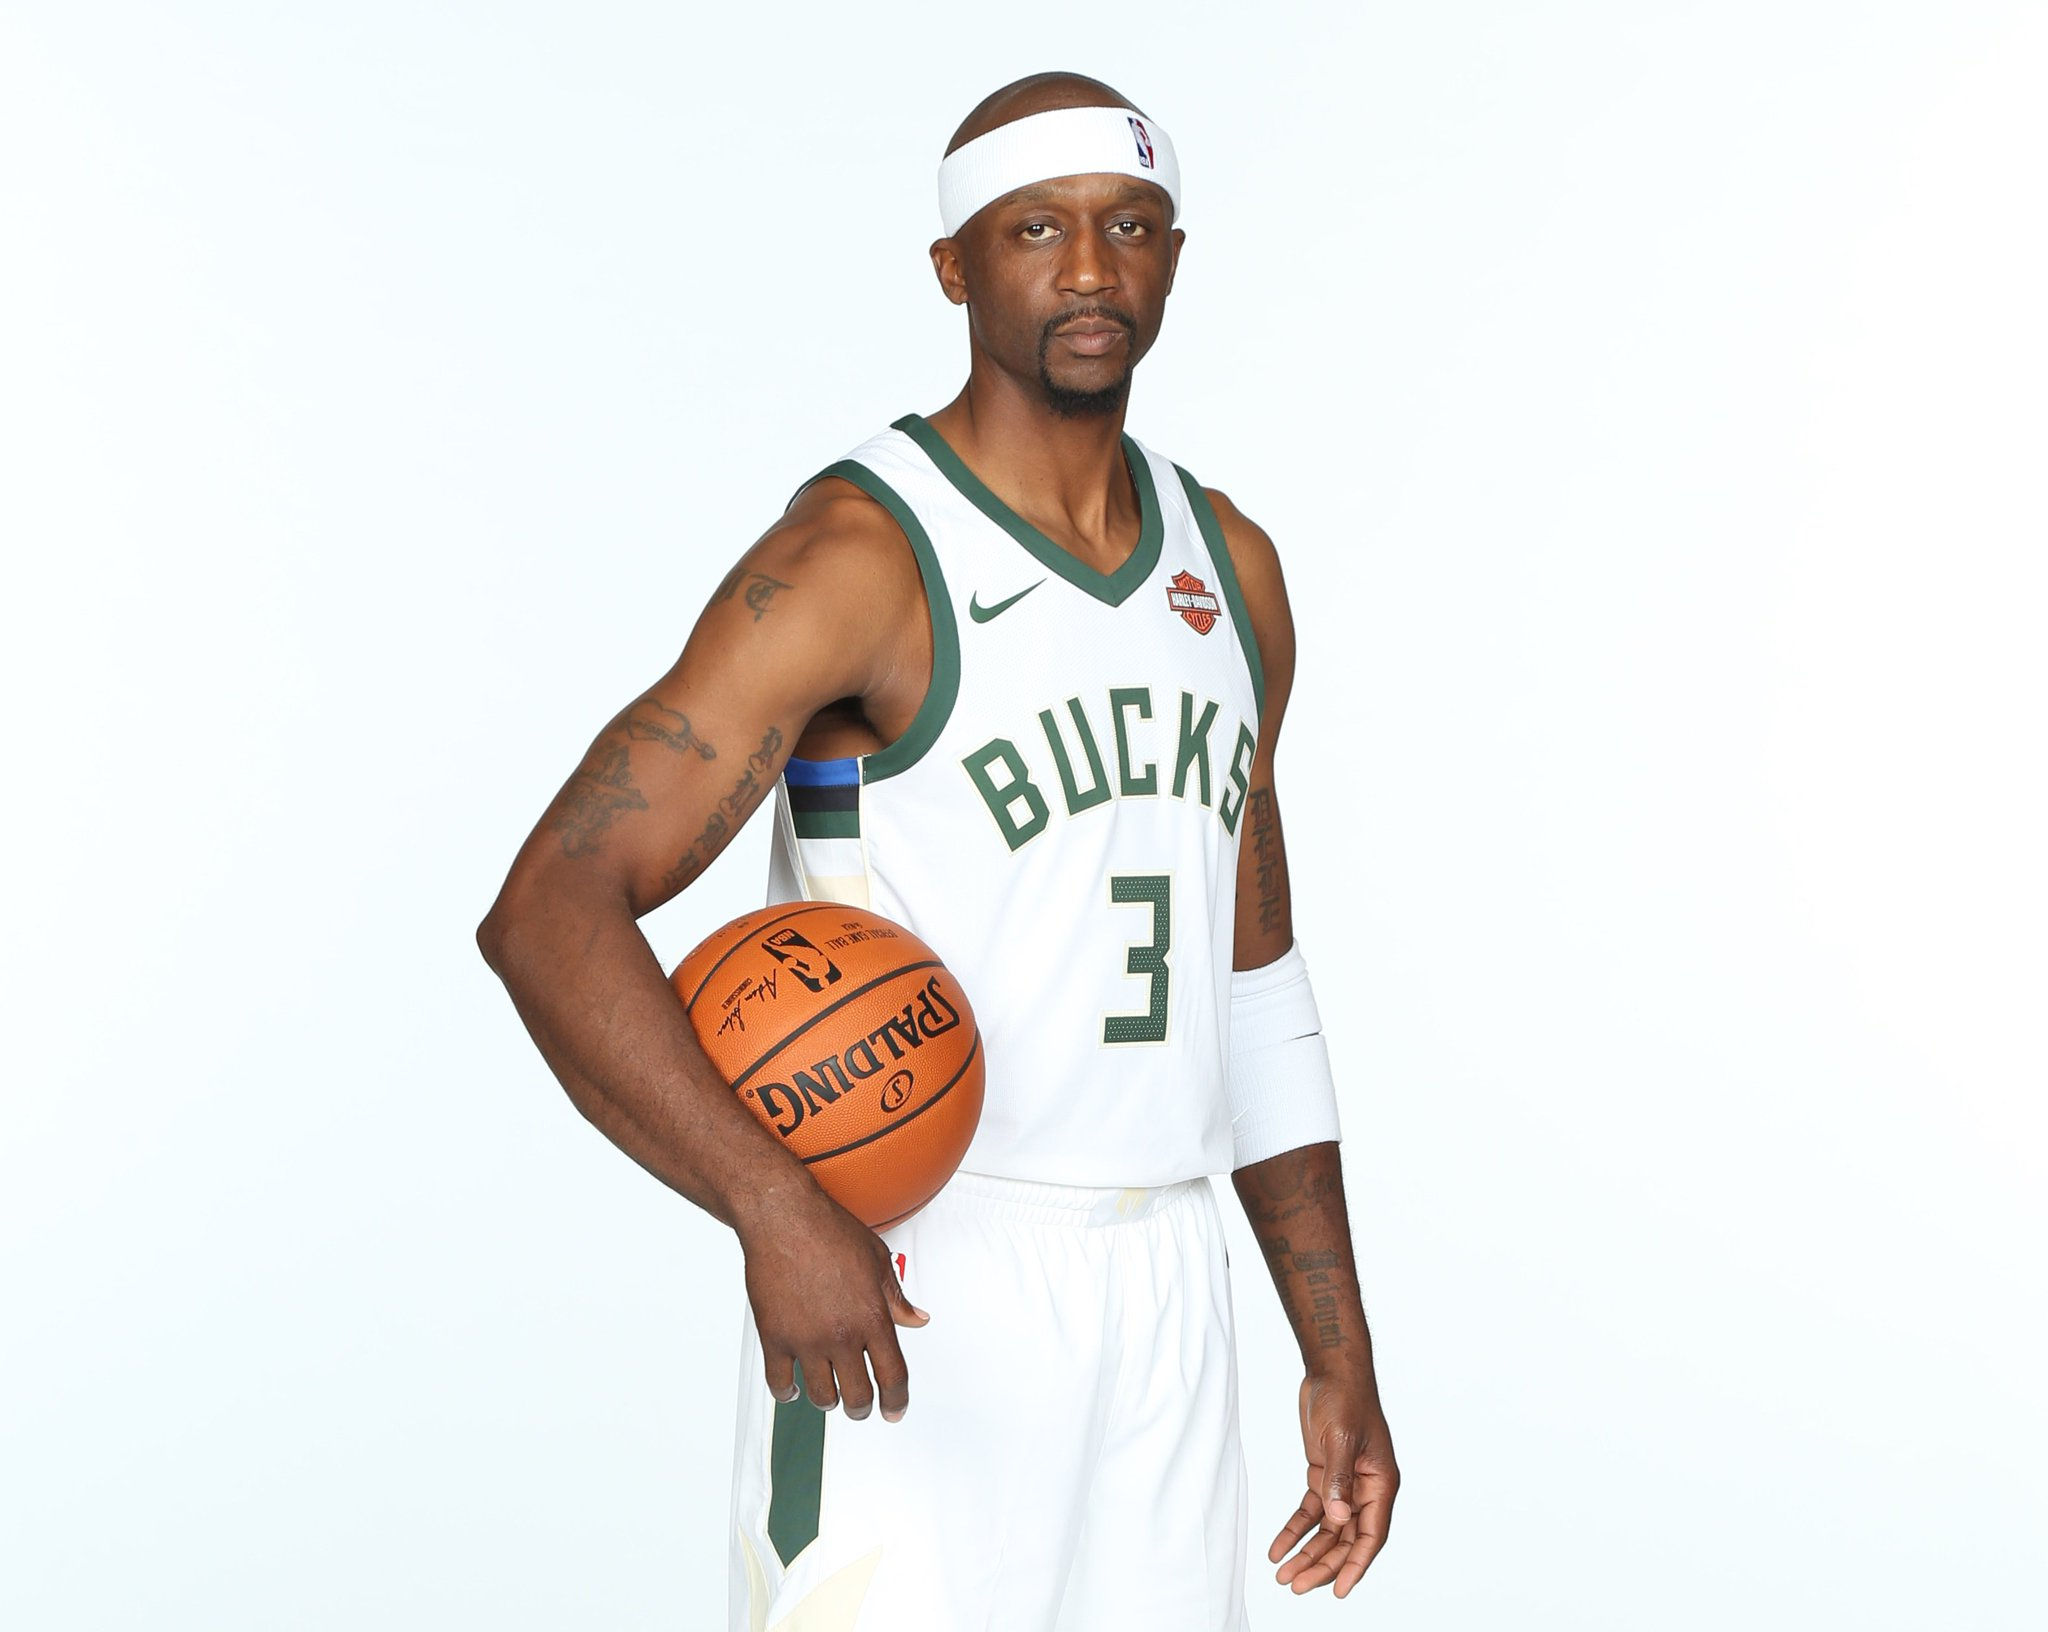 Join us in wishing @jasonterry31 of the @Bucks a HAPPY 41st BIRTHDAY! #NBABDAY https://t.co/1OJxiEW6vm